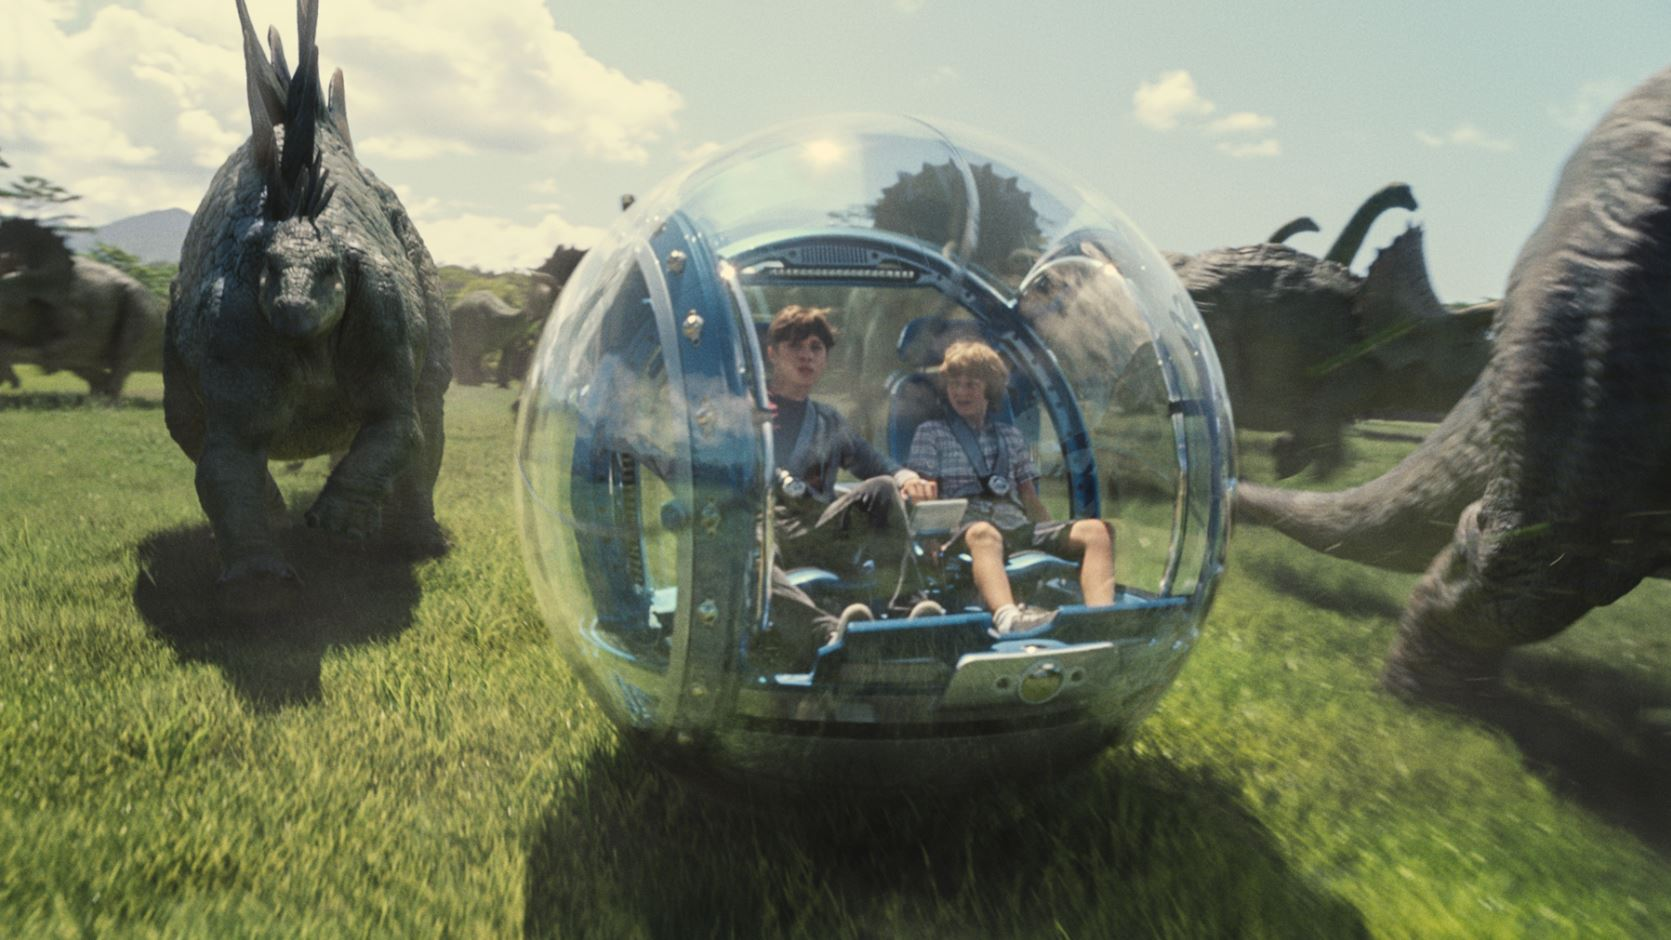 Zach and Gray in the gyrosphere - Jurassic World Review